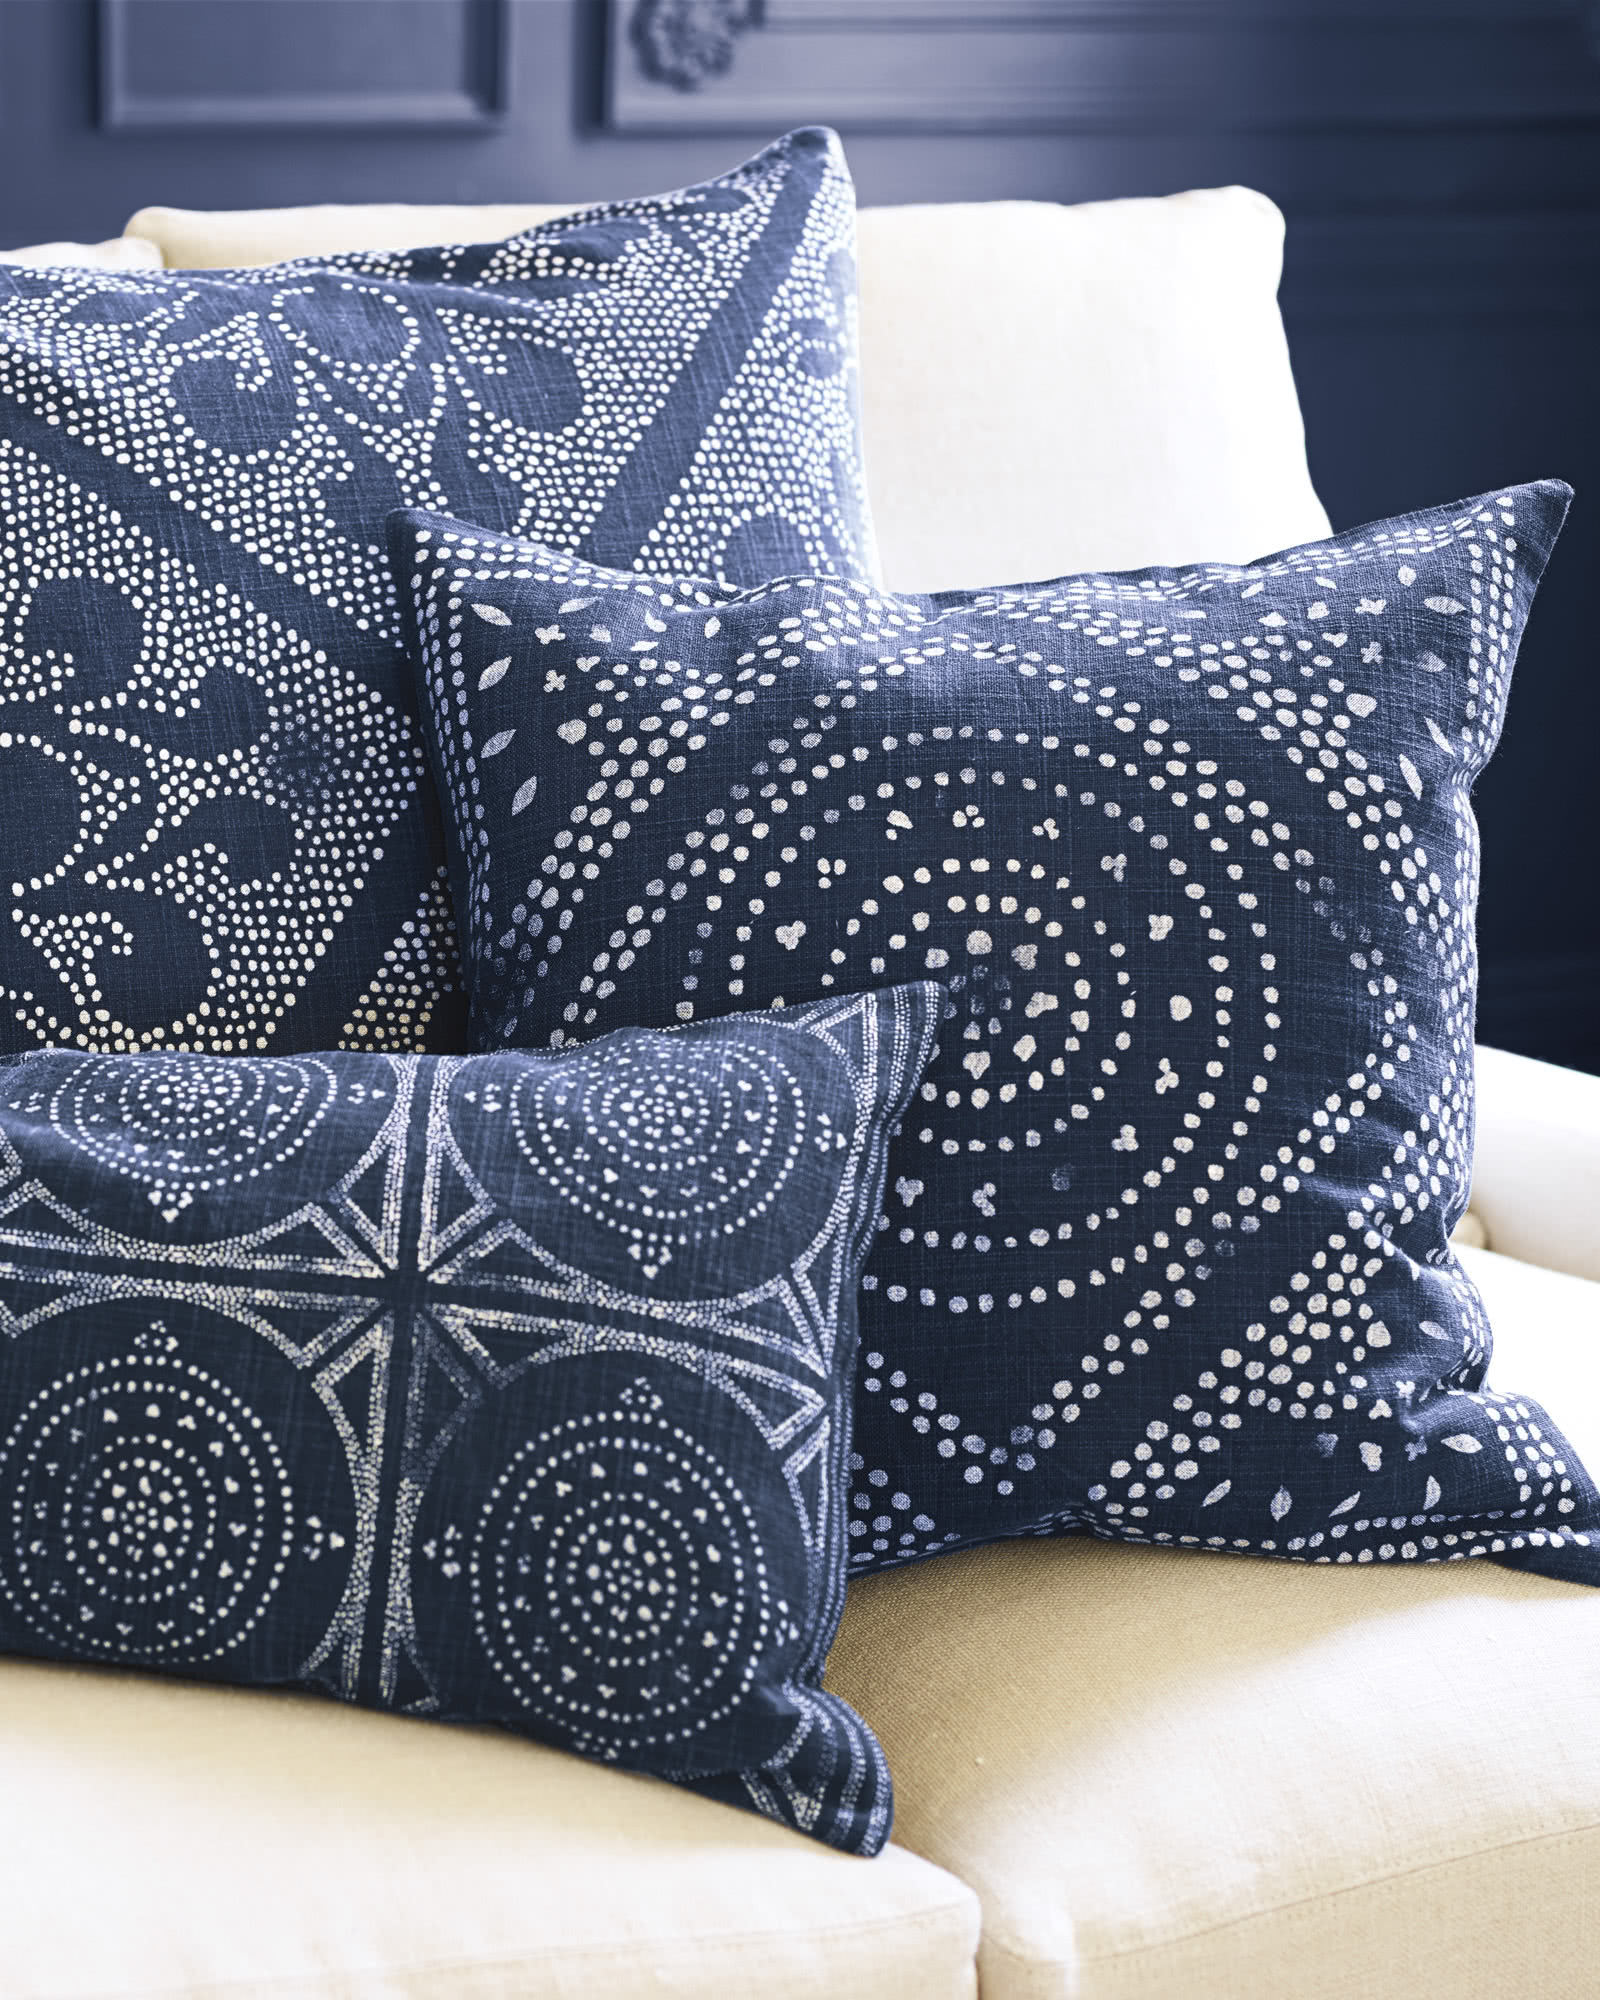 Camille Diamond Medallion Pillow Cover  Serena  Lily